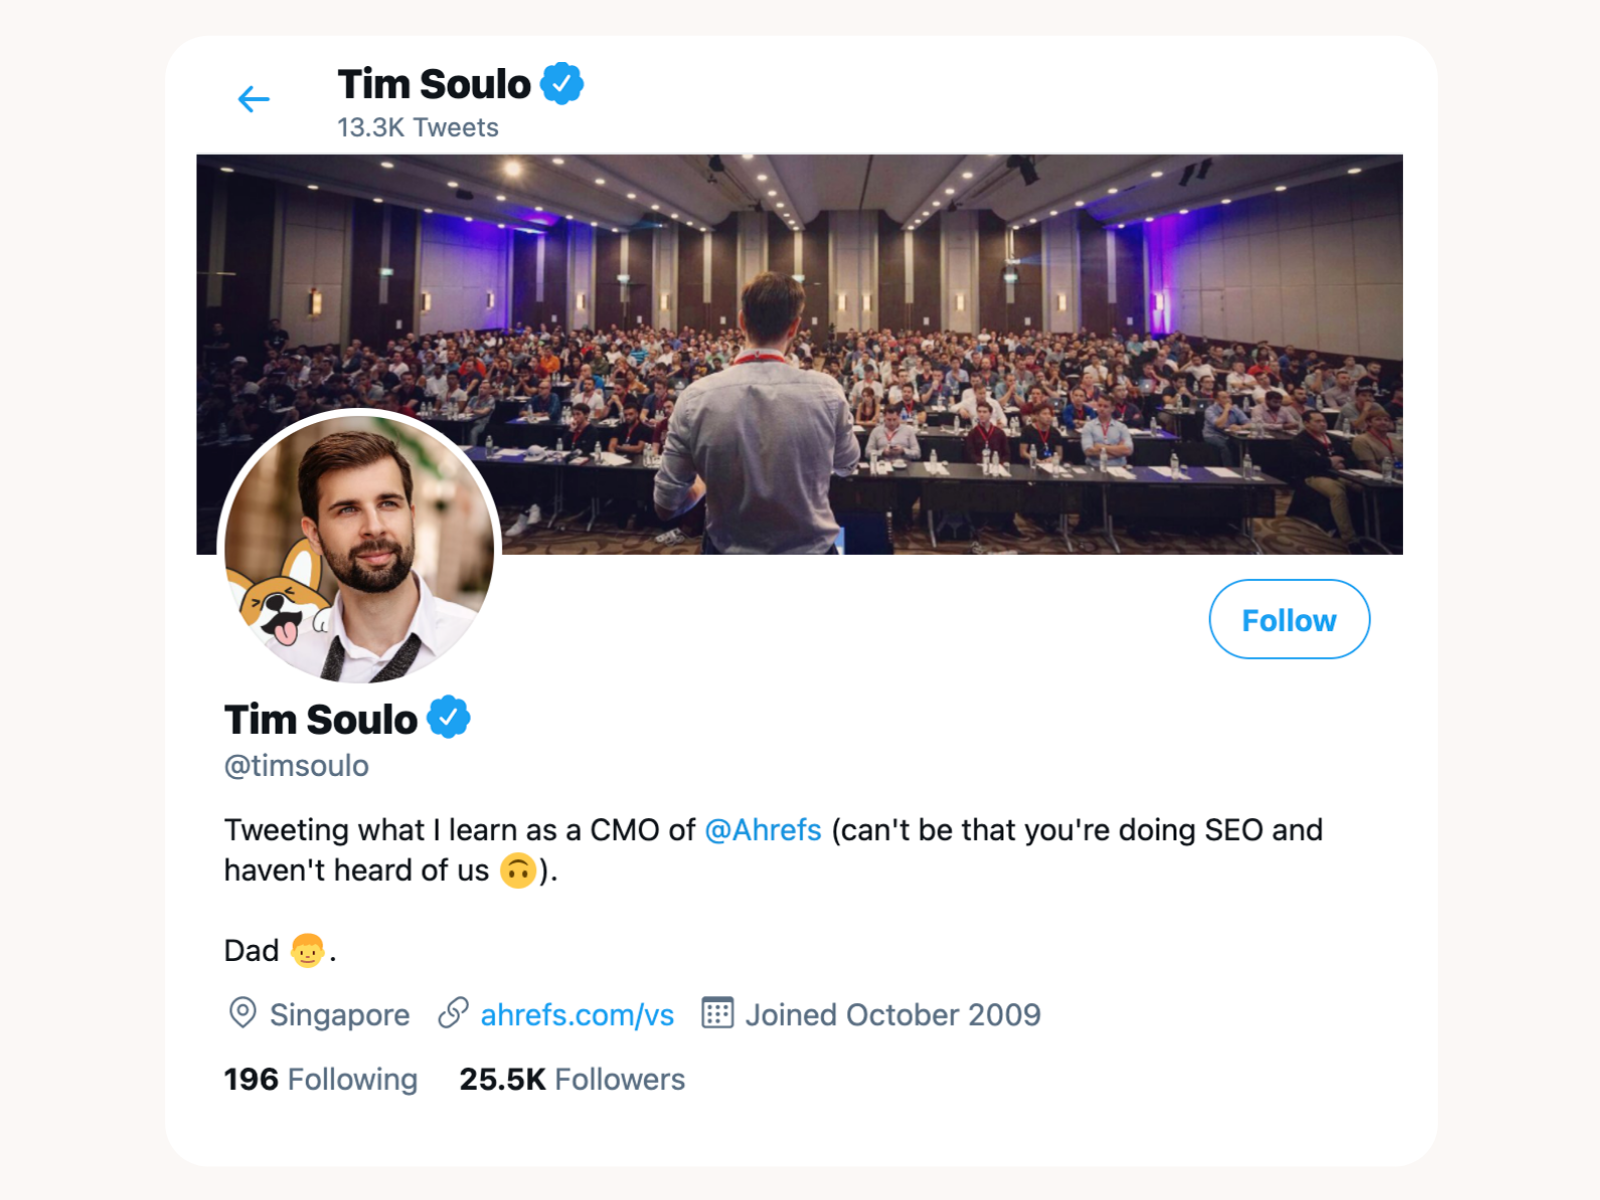 Tim Soulo's Twitter account